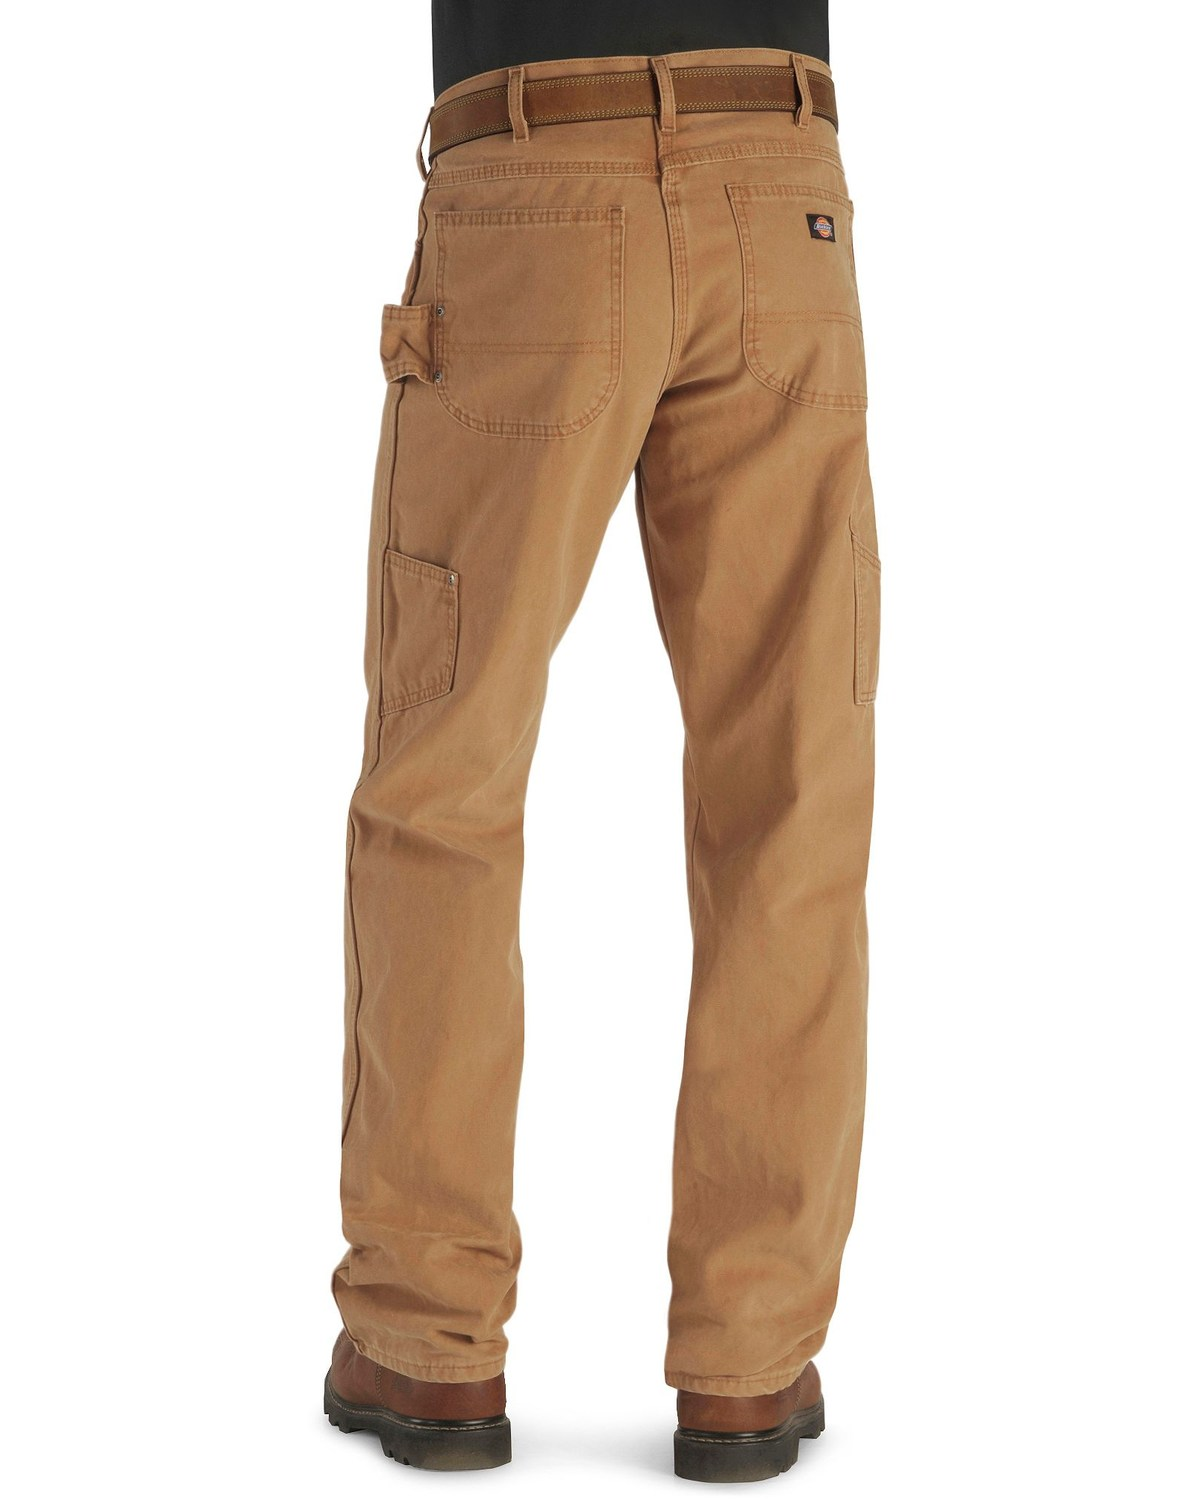 343b0b12 Zoomed Image Dickies Relaxed Fit Weatherford Work Pants, Brown Duck,  hi-res. Zoomed Image ...